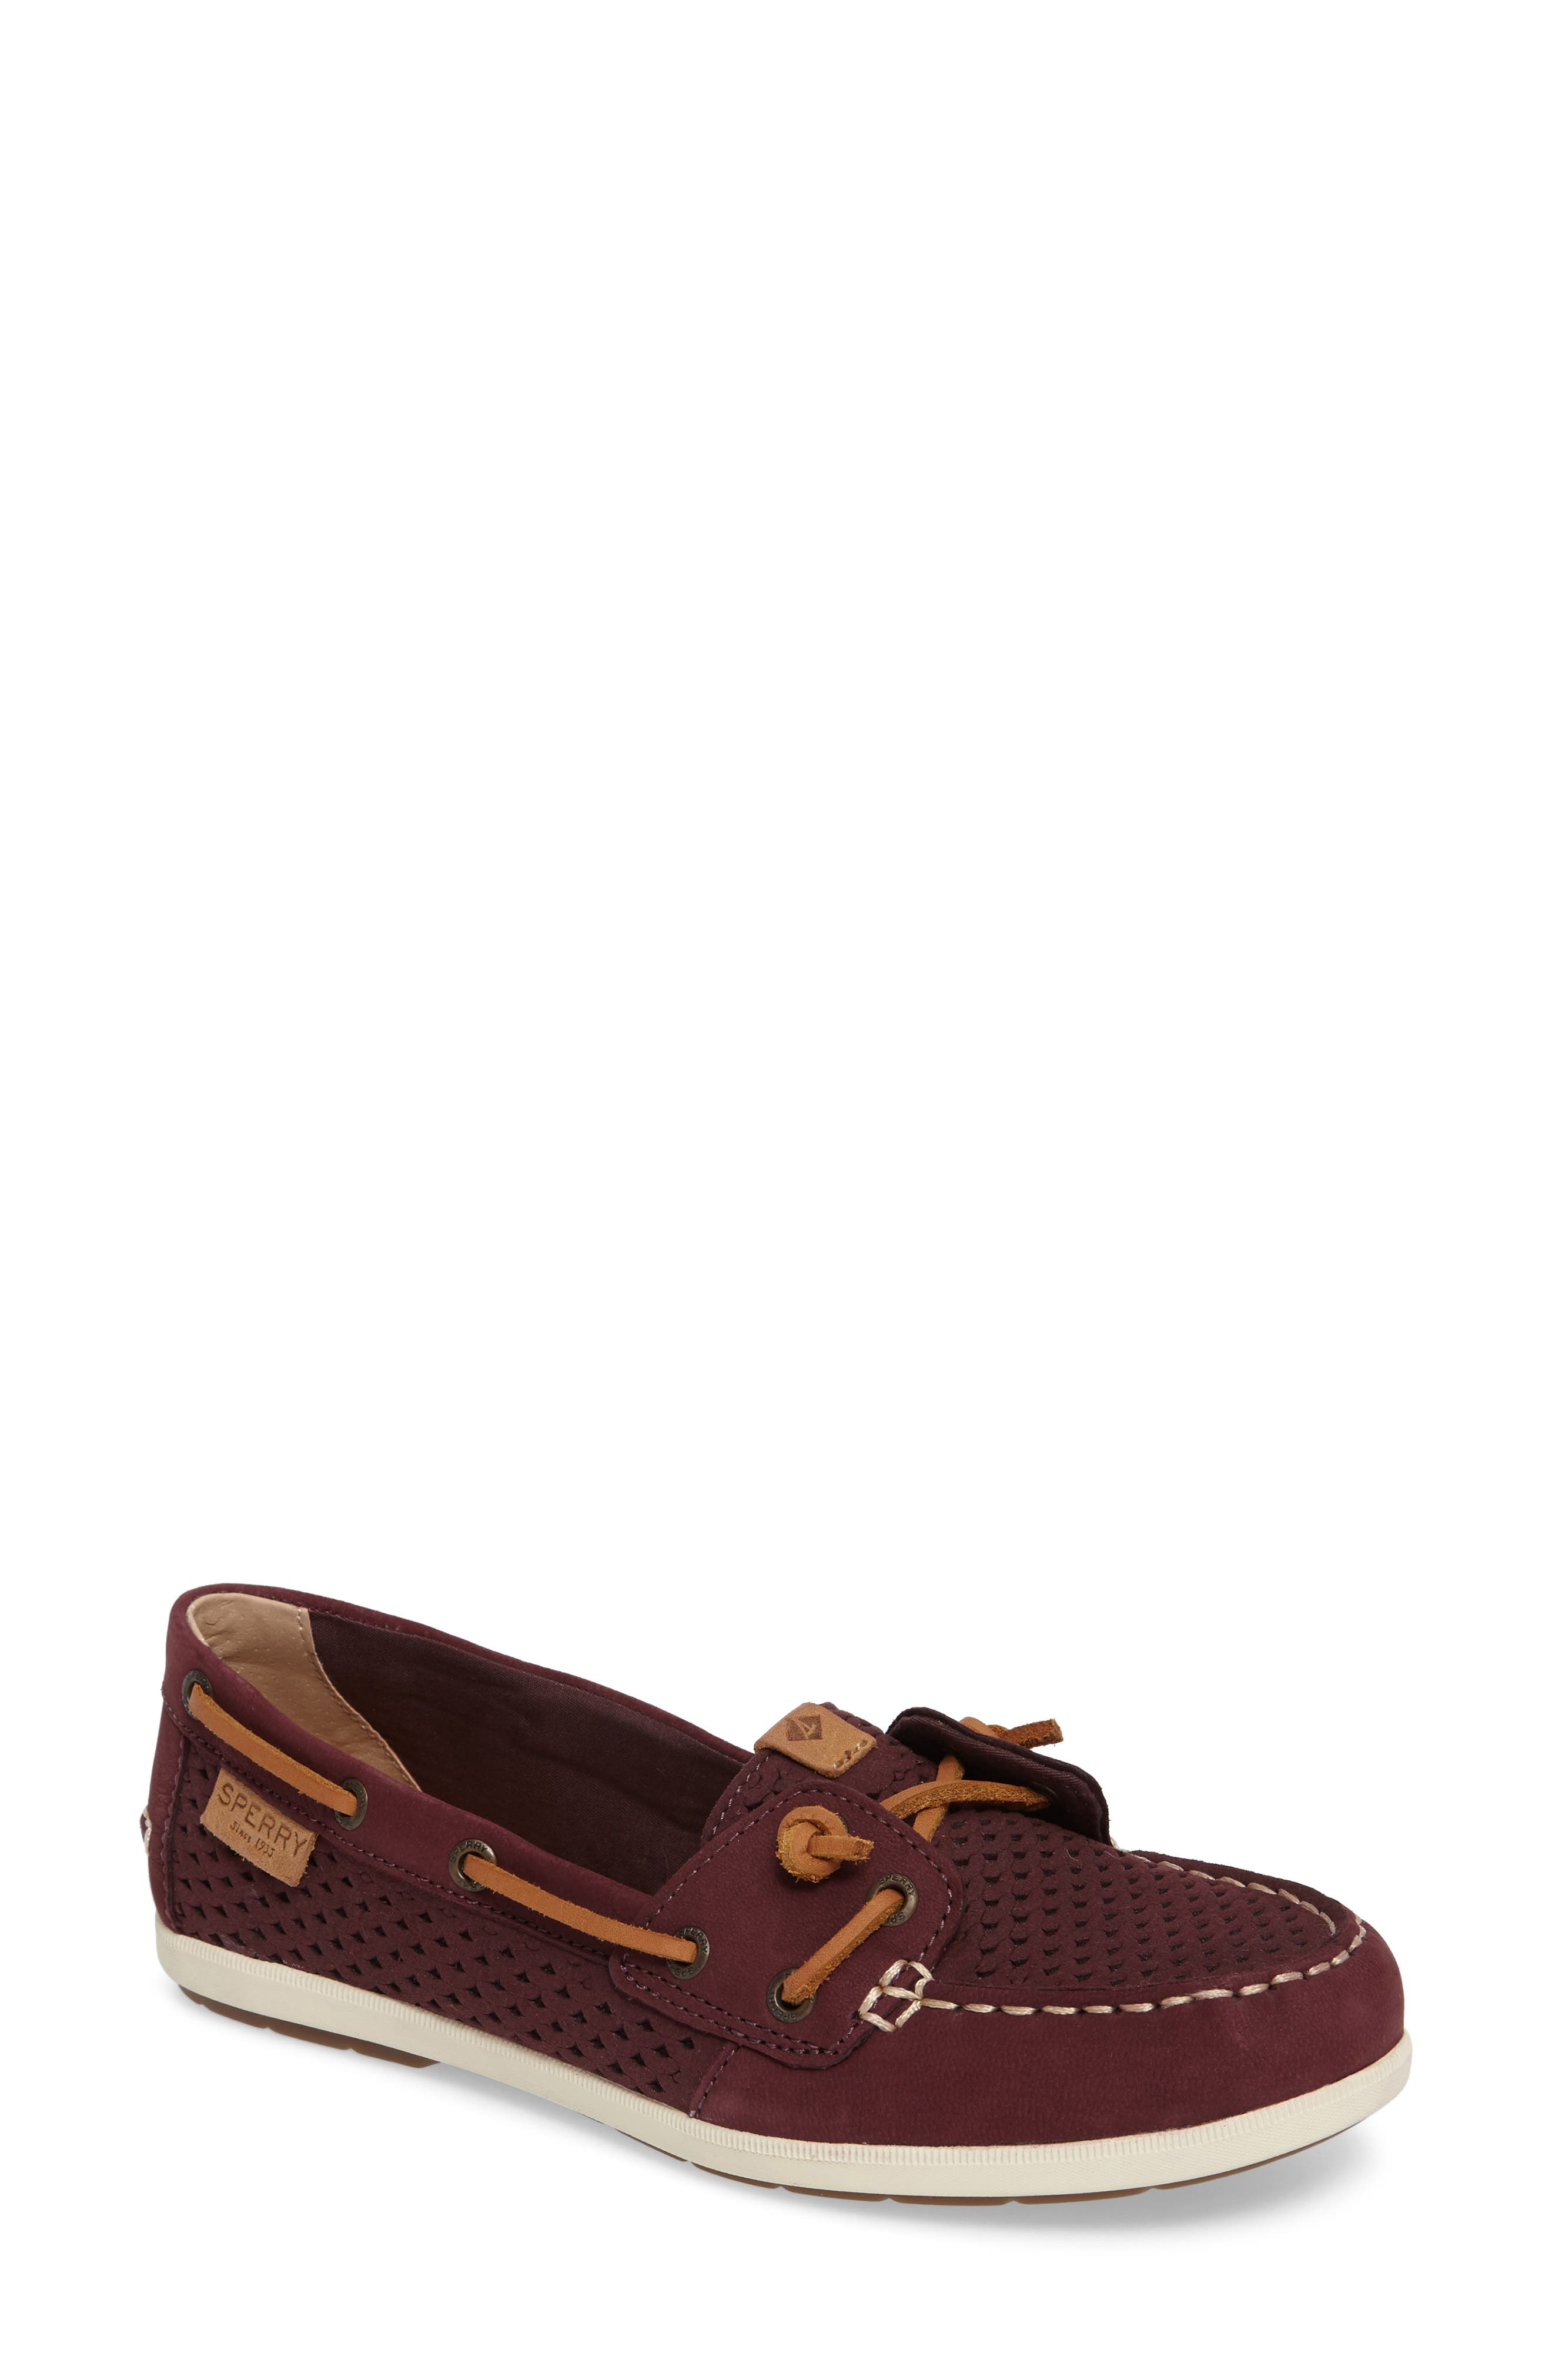 Alternate Image 1 Selected - Sperry Coil Ivy Perforated Boat Shoe (Women)